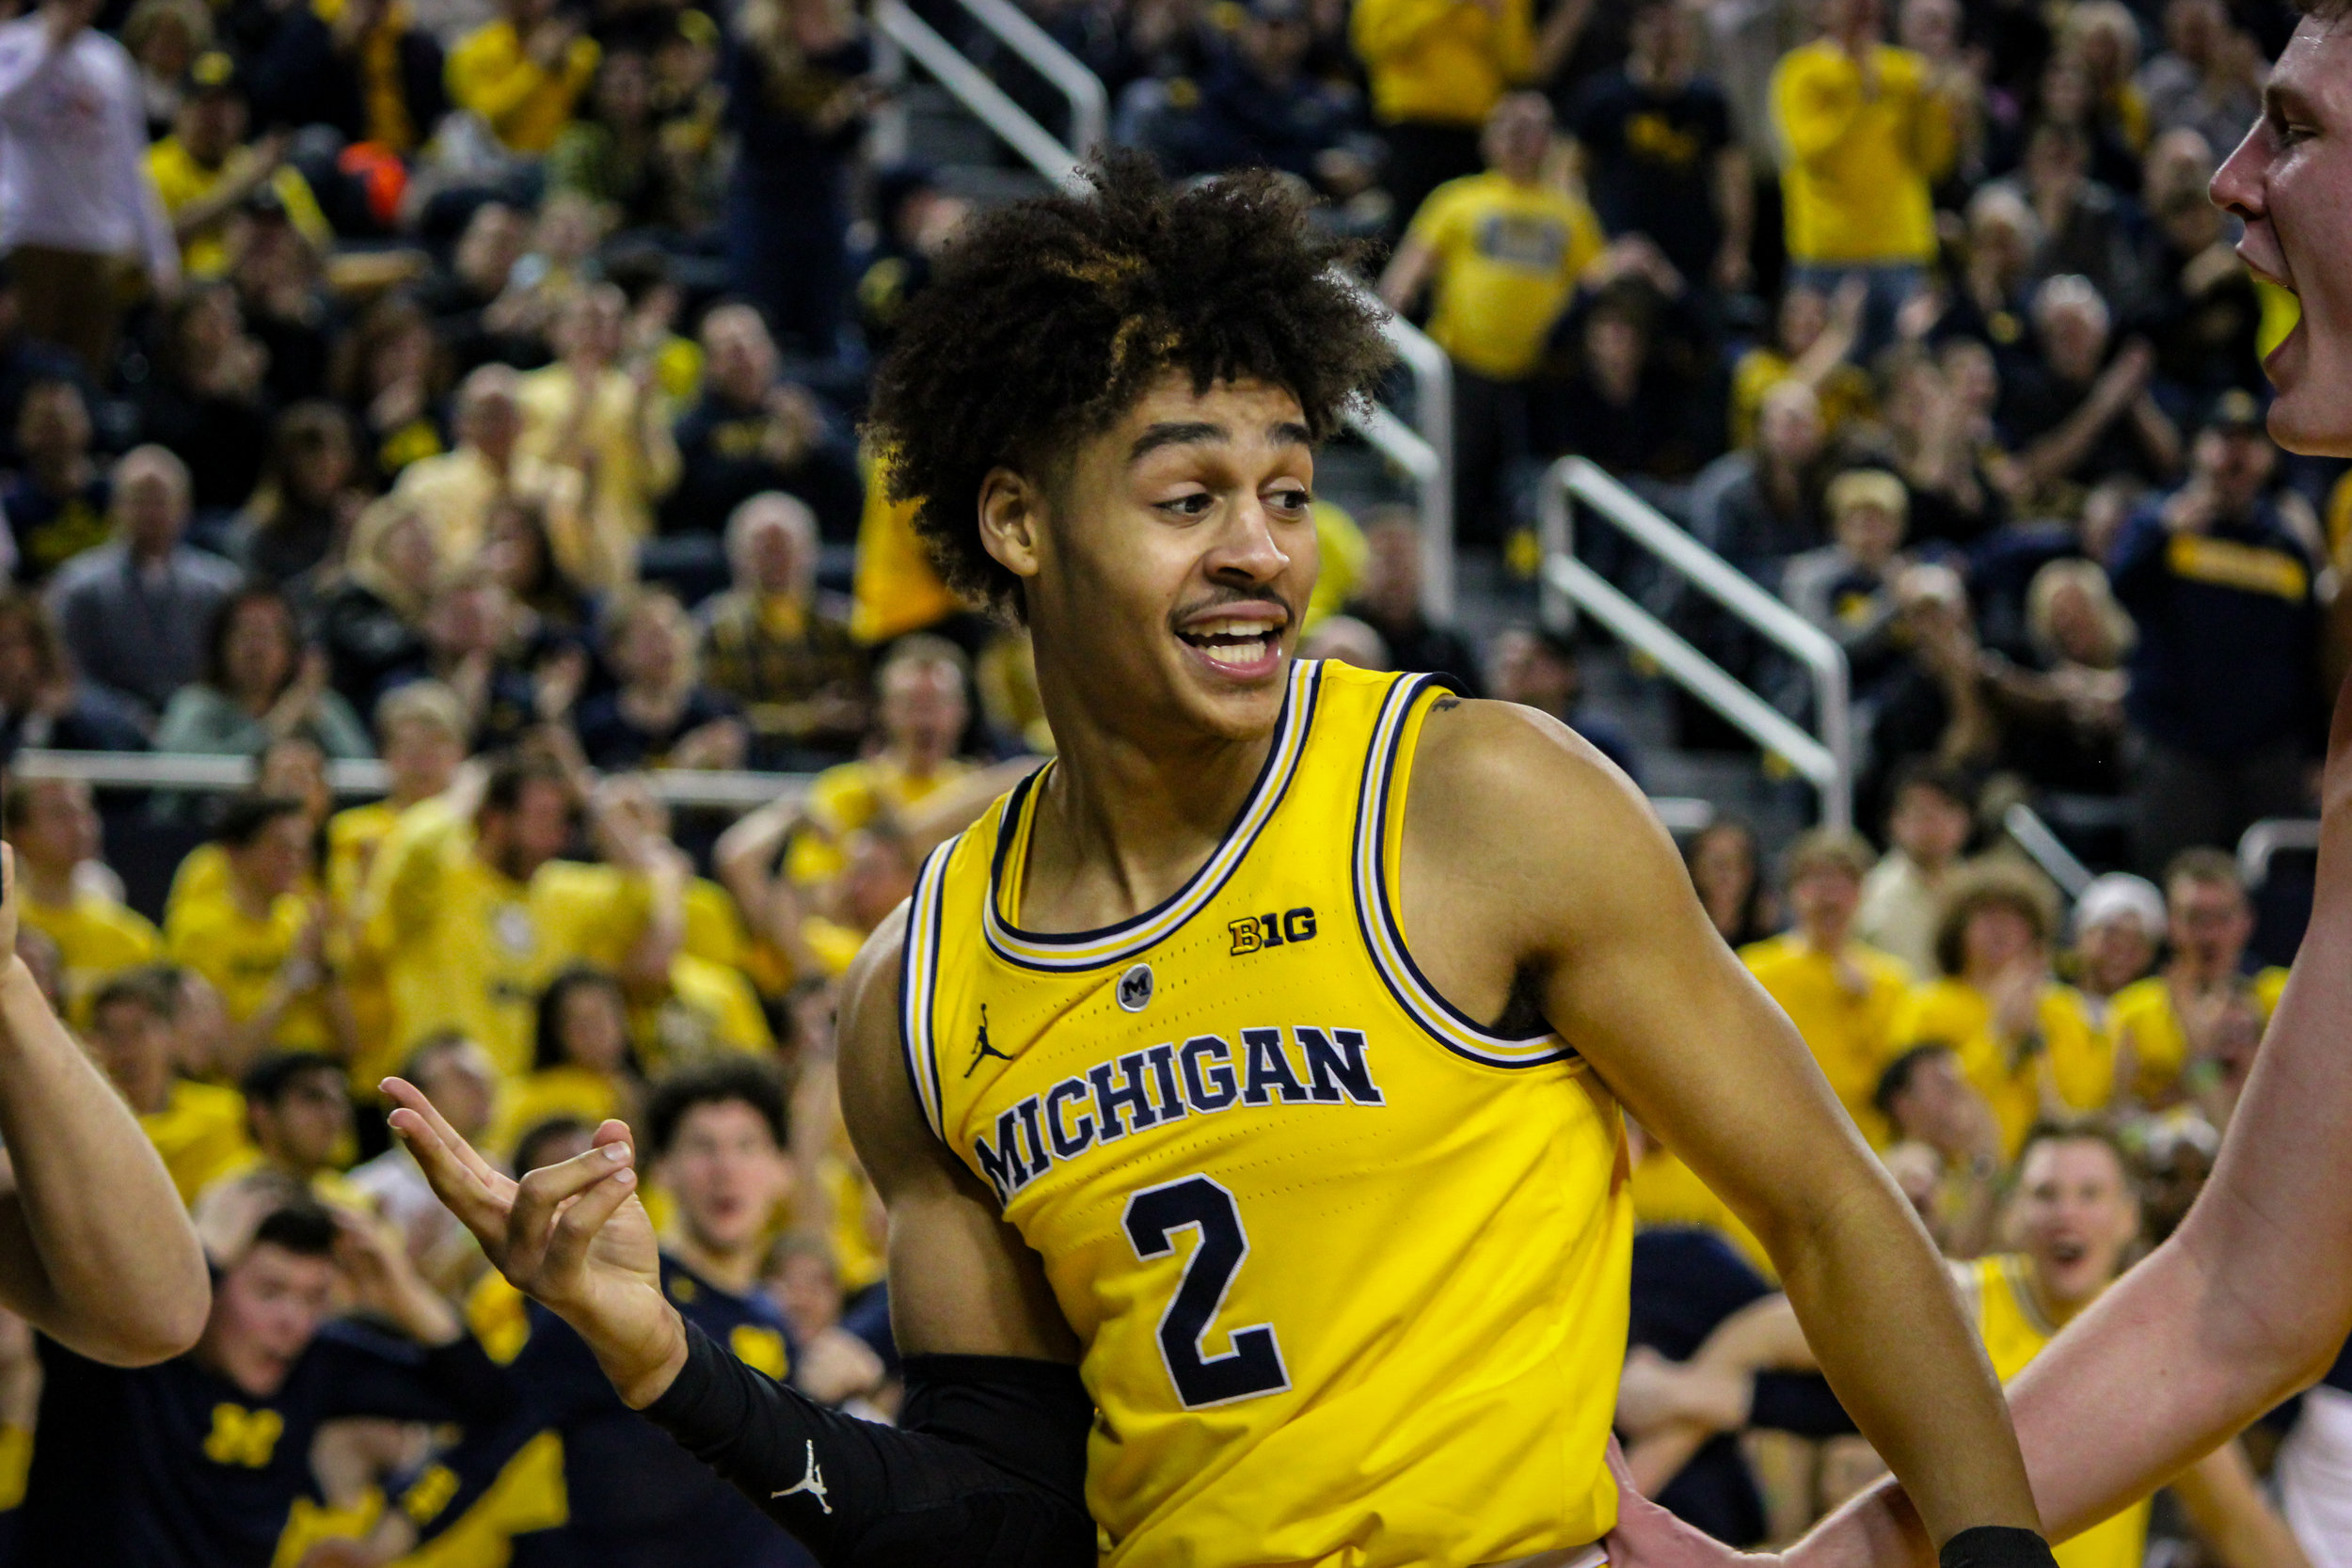 Jordan Poole posing after a score and a foul.